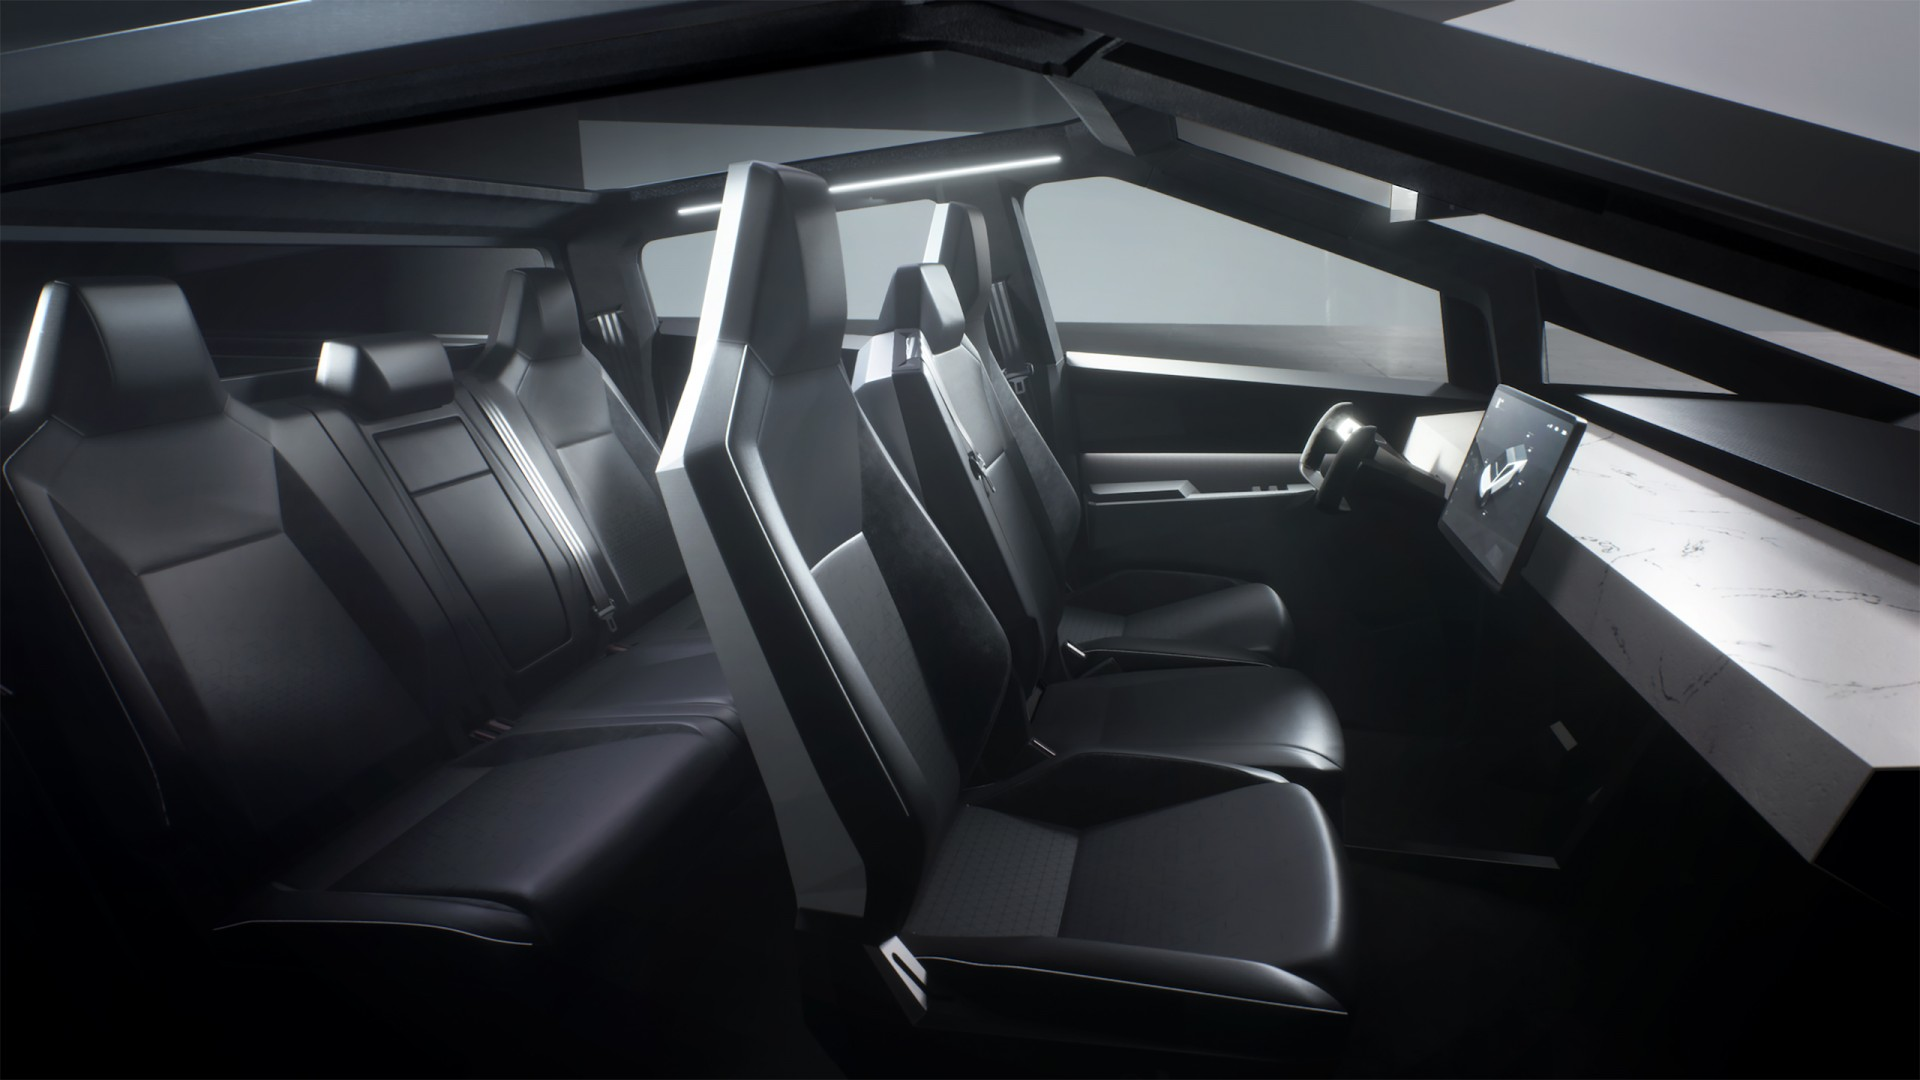 I don't own any tesla stock, nor do i derive any income from tesla's success. Tesla Cybertruck Prototype 2019 Interior Wallpaper   HD